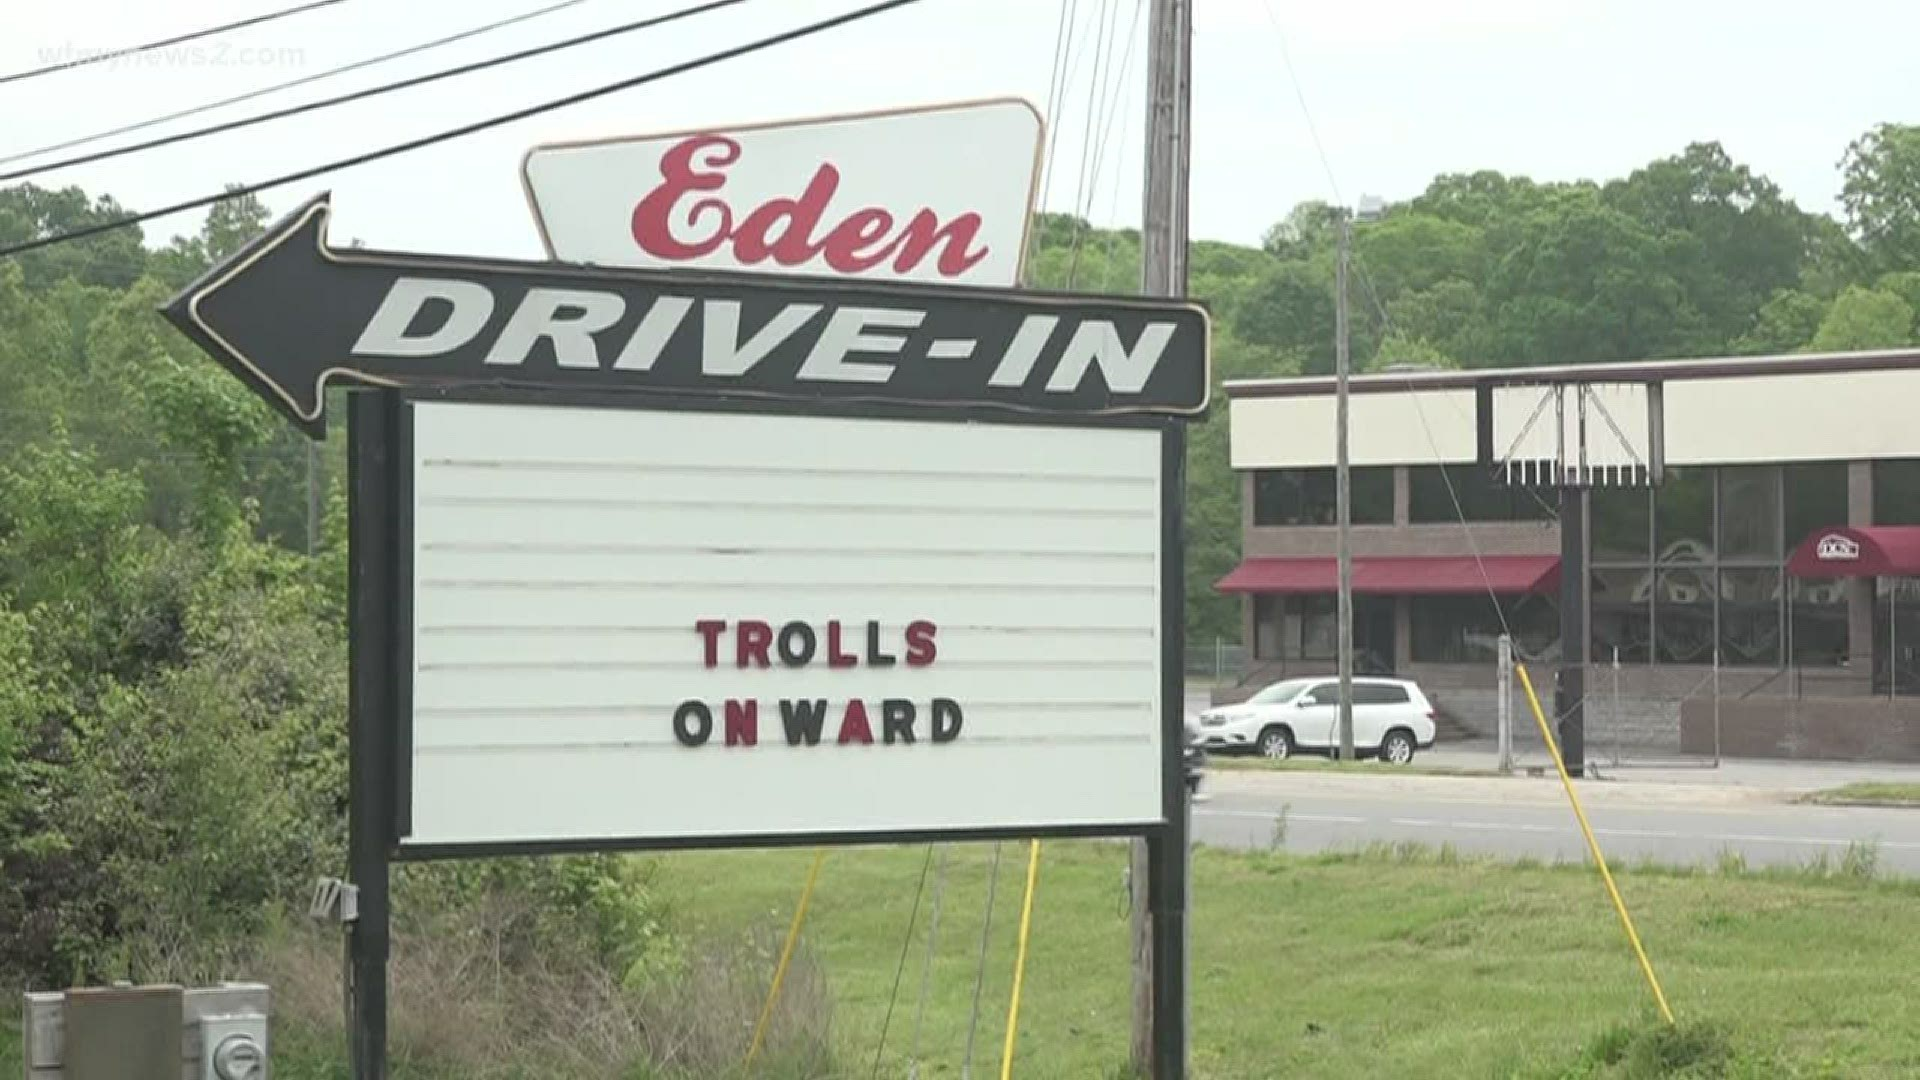 Eden Drive In Movie Theater Expects To Attract A Big Crowd On Opening Day Wqad Com